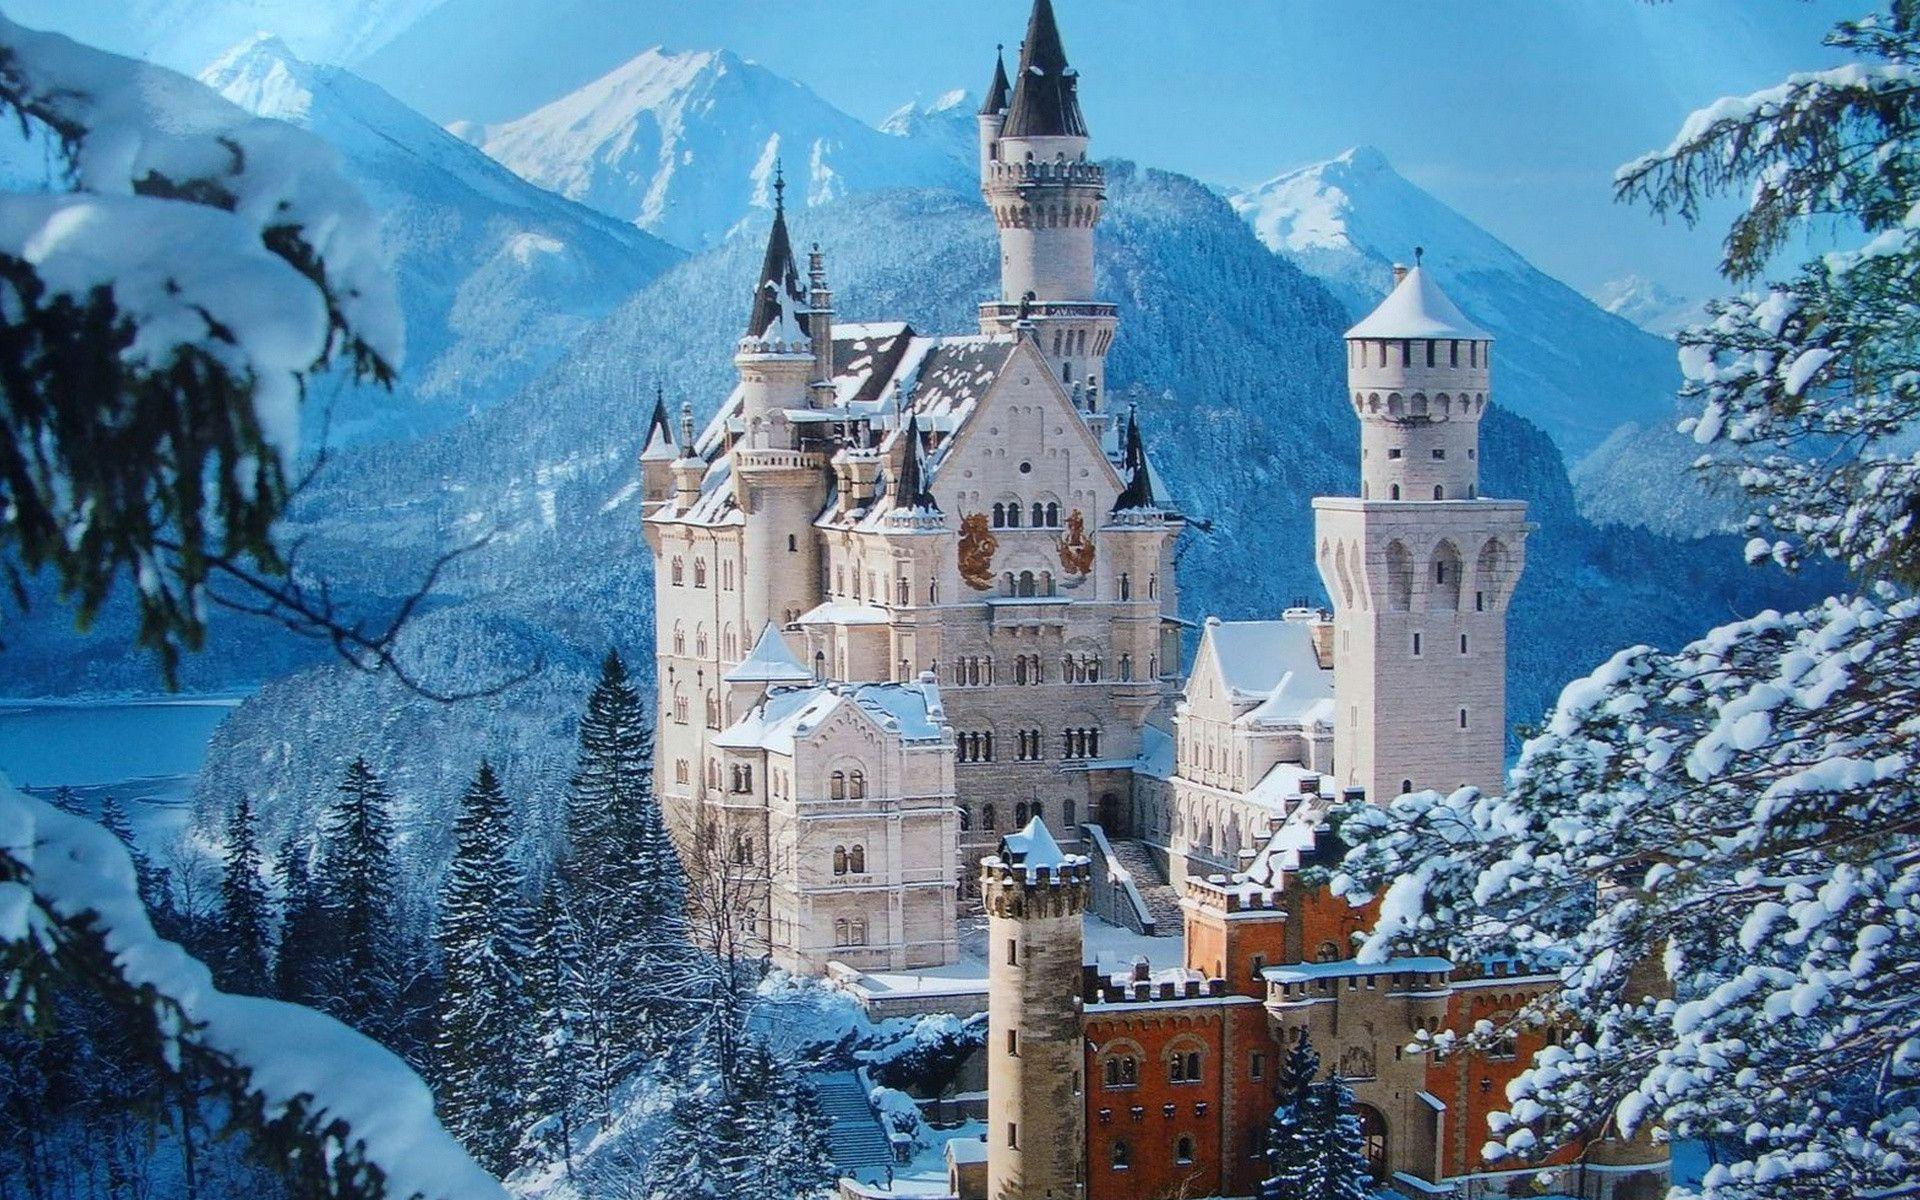 Neuschwanstein Castle is a 19th-century Romanesque Revival palace ...